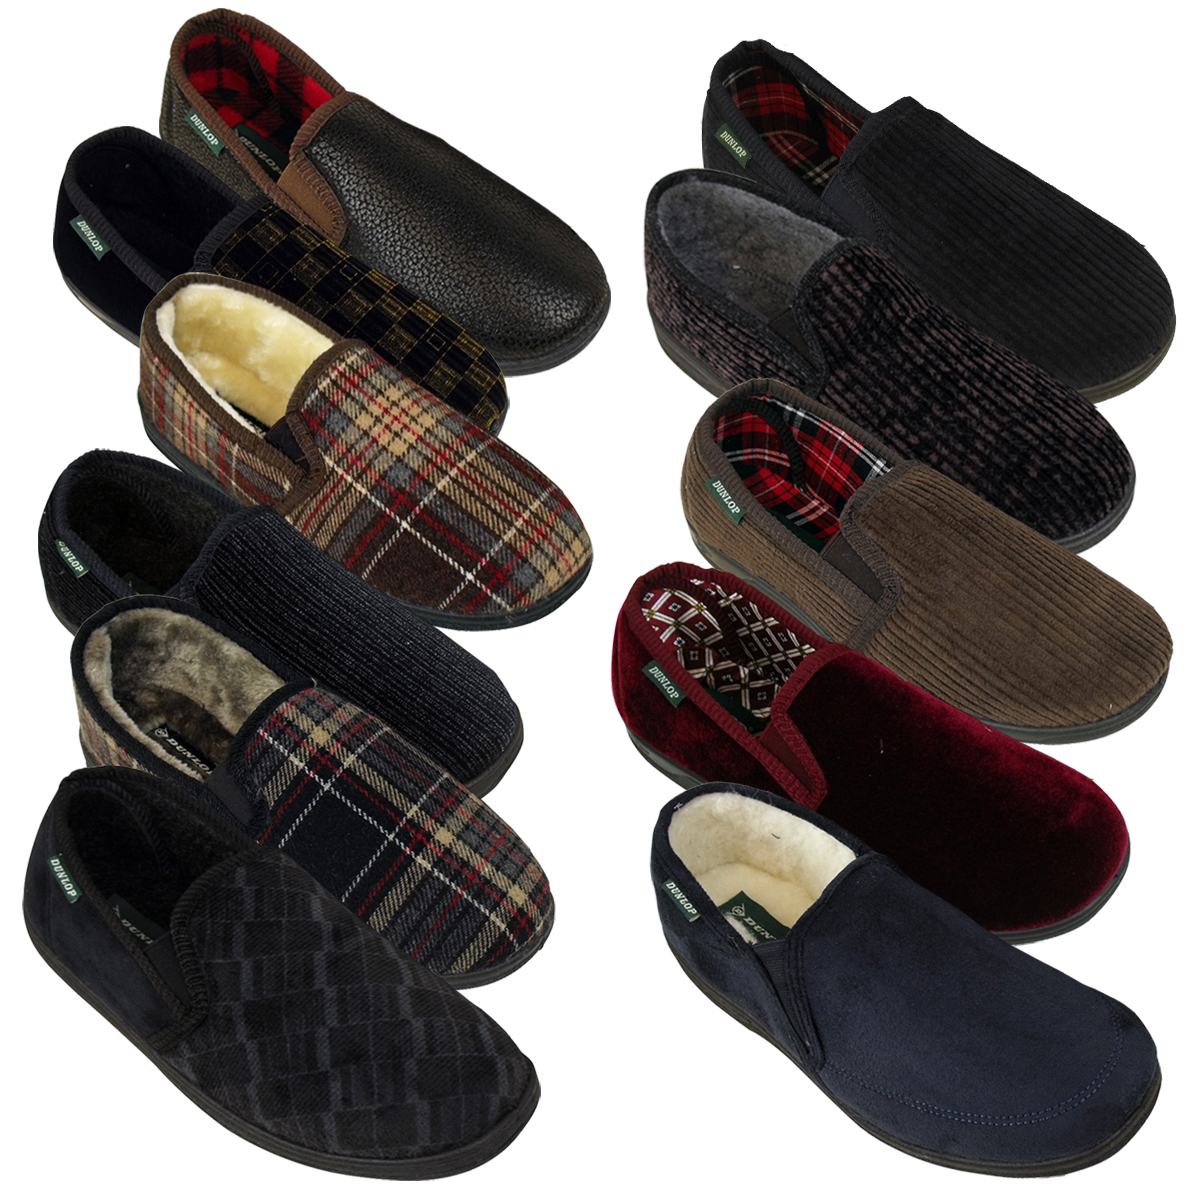 Size 6 Boys Slippers with FREE Shipping & Exchanges, and a % price guarantee. Choose from a huge selection of Size 6 Boys Slippers styles.